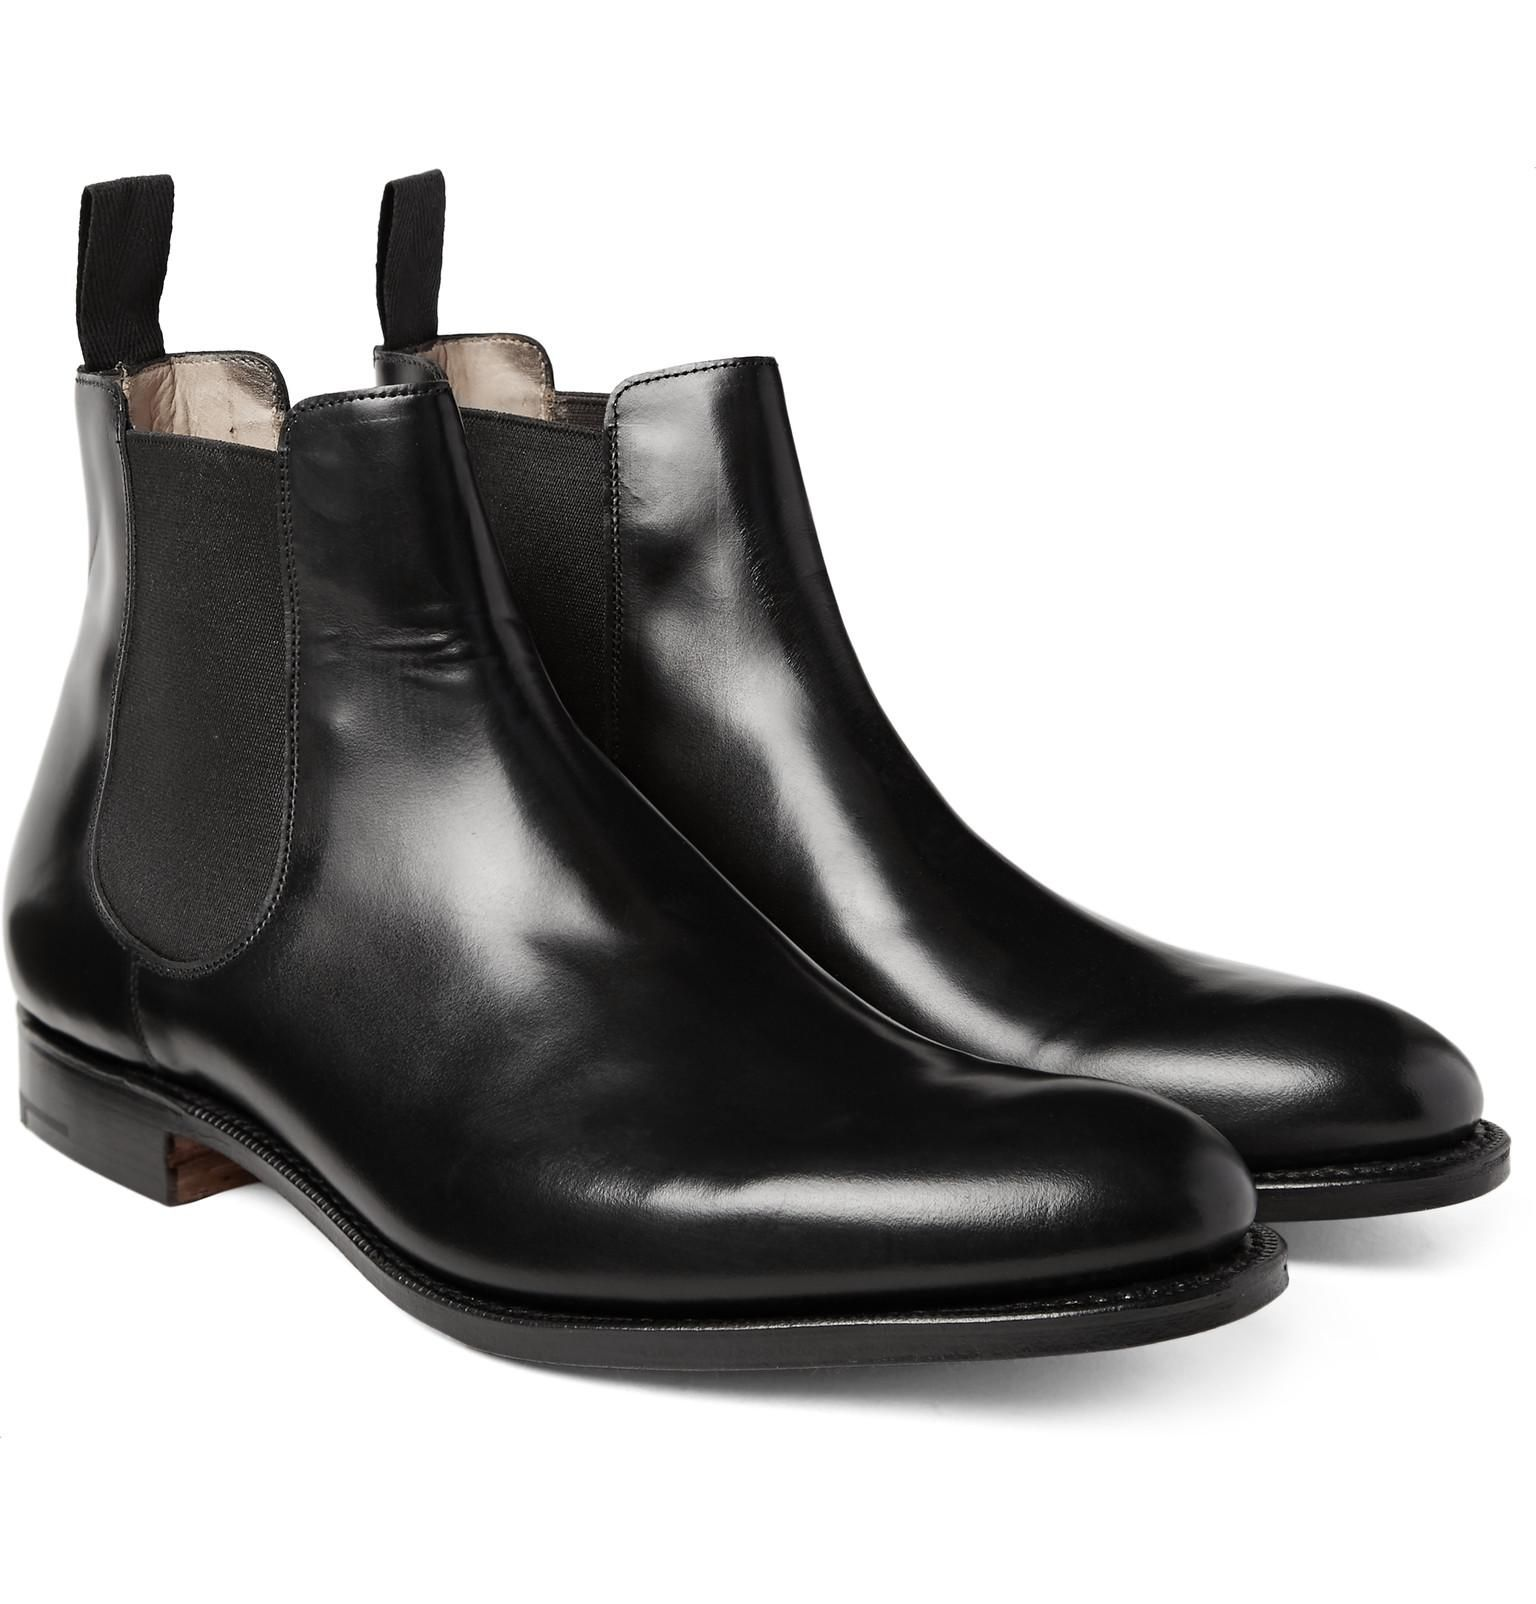 451efa6a64943 Men's Black Houston Leather Chelsea Boots in 2019 | formal boots ...